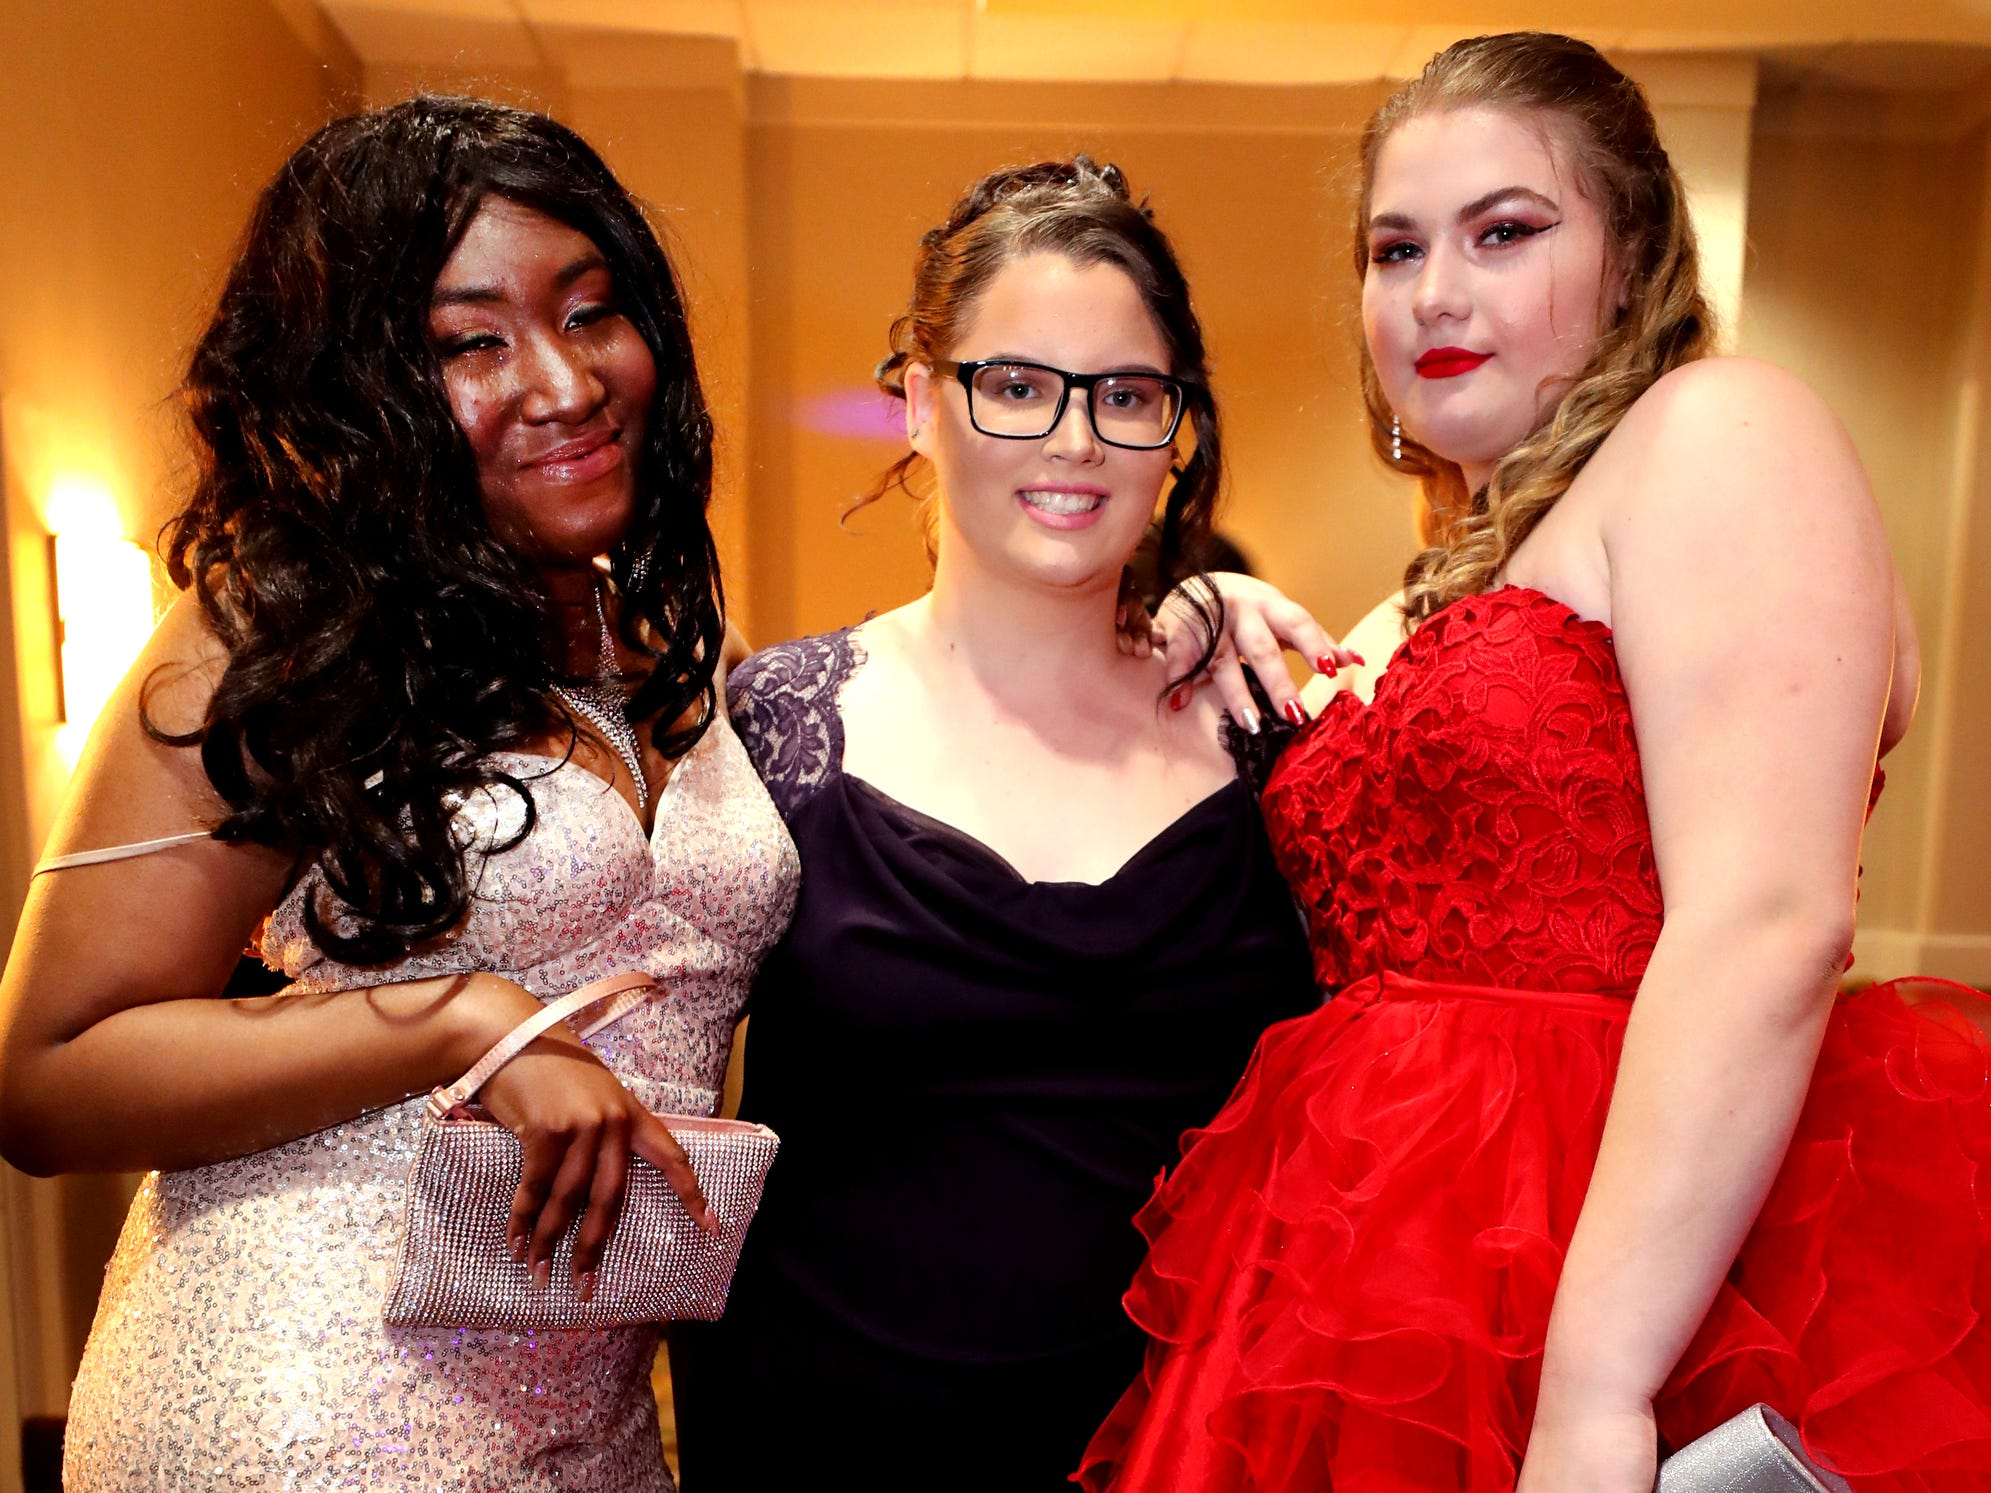 Simya Pennington, left, Destiny Fenner, center, and Cortney Springer, right at Holloway's prom at the DoubleTree on Thursday April 18, 2019.